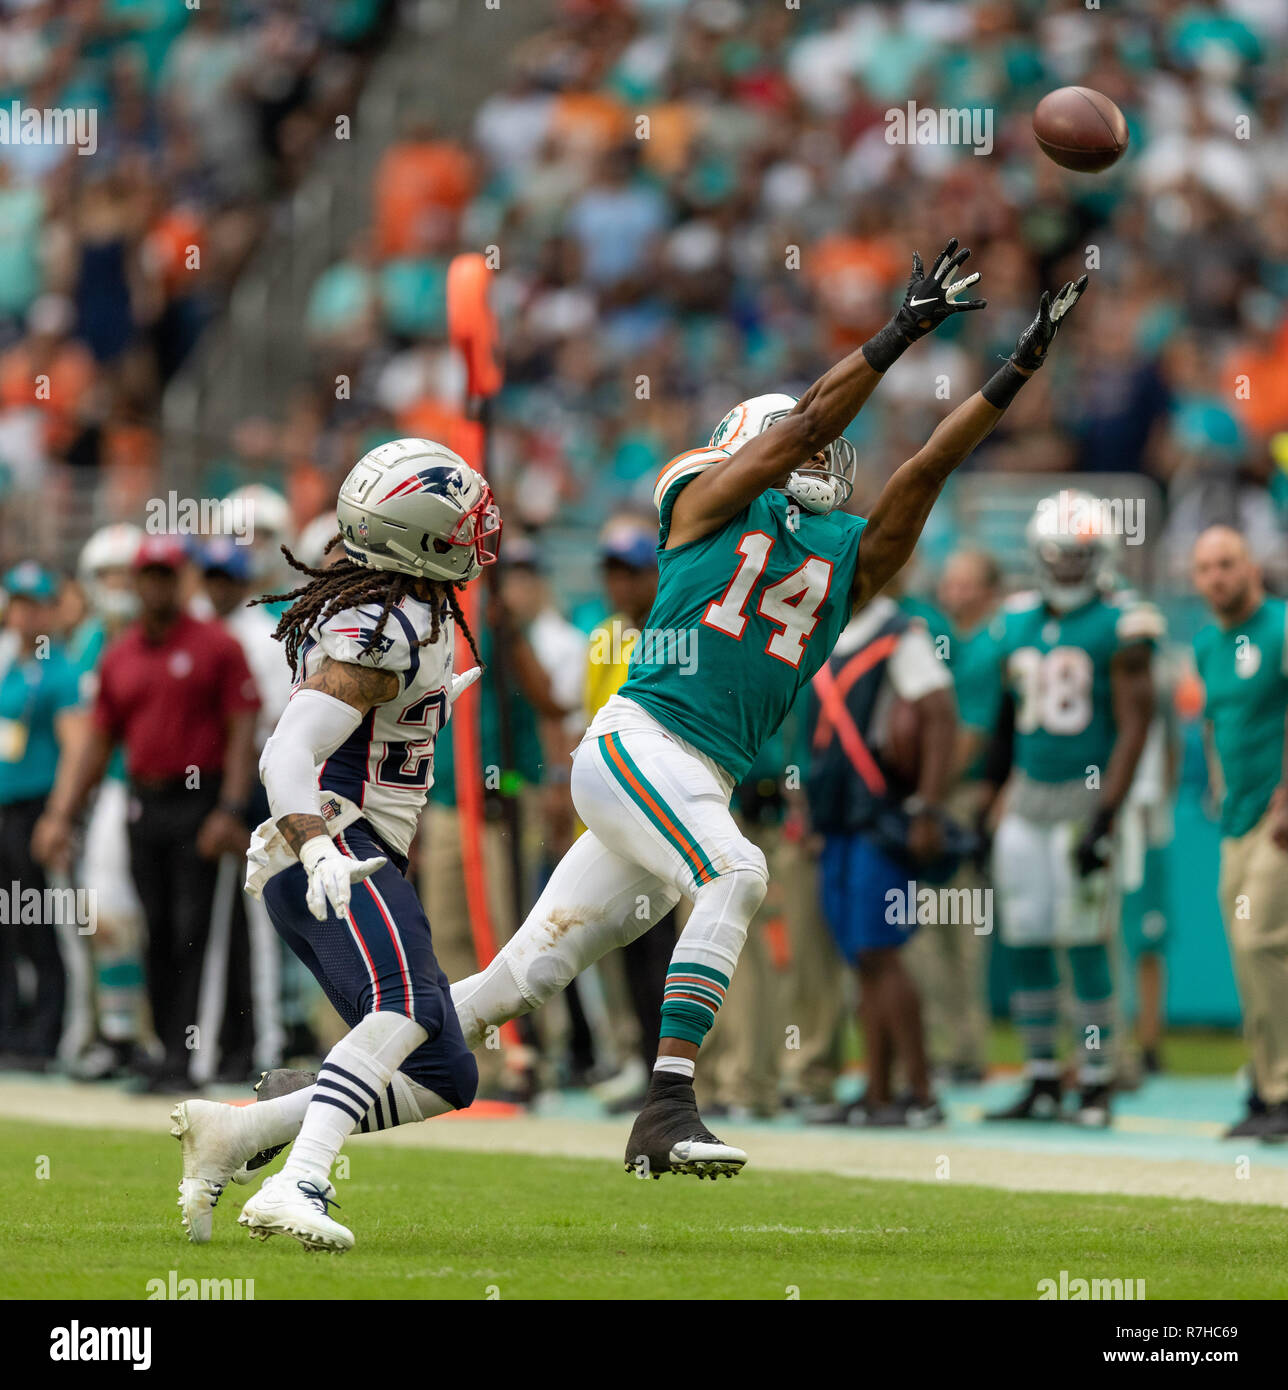 Miami Dolphins News Wire | December 9 2018 Miami Dolphins 14 Brice Butler Reaches For A